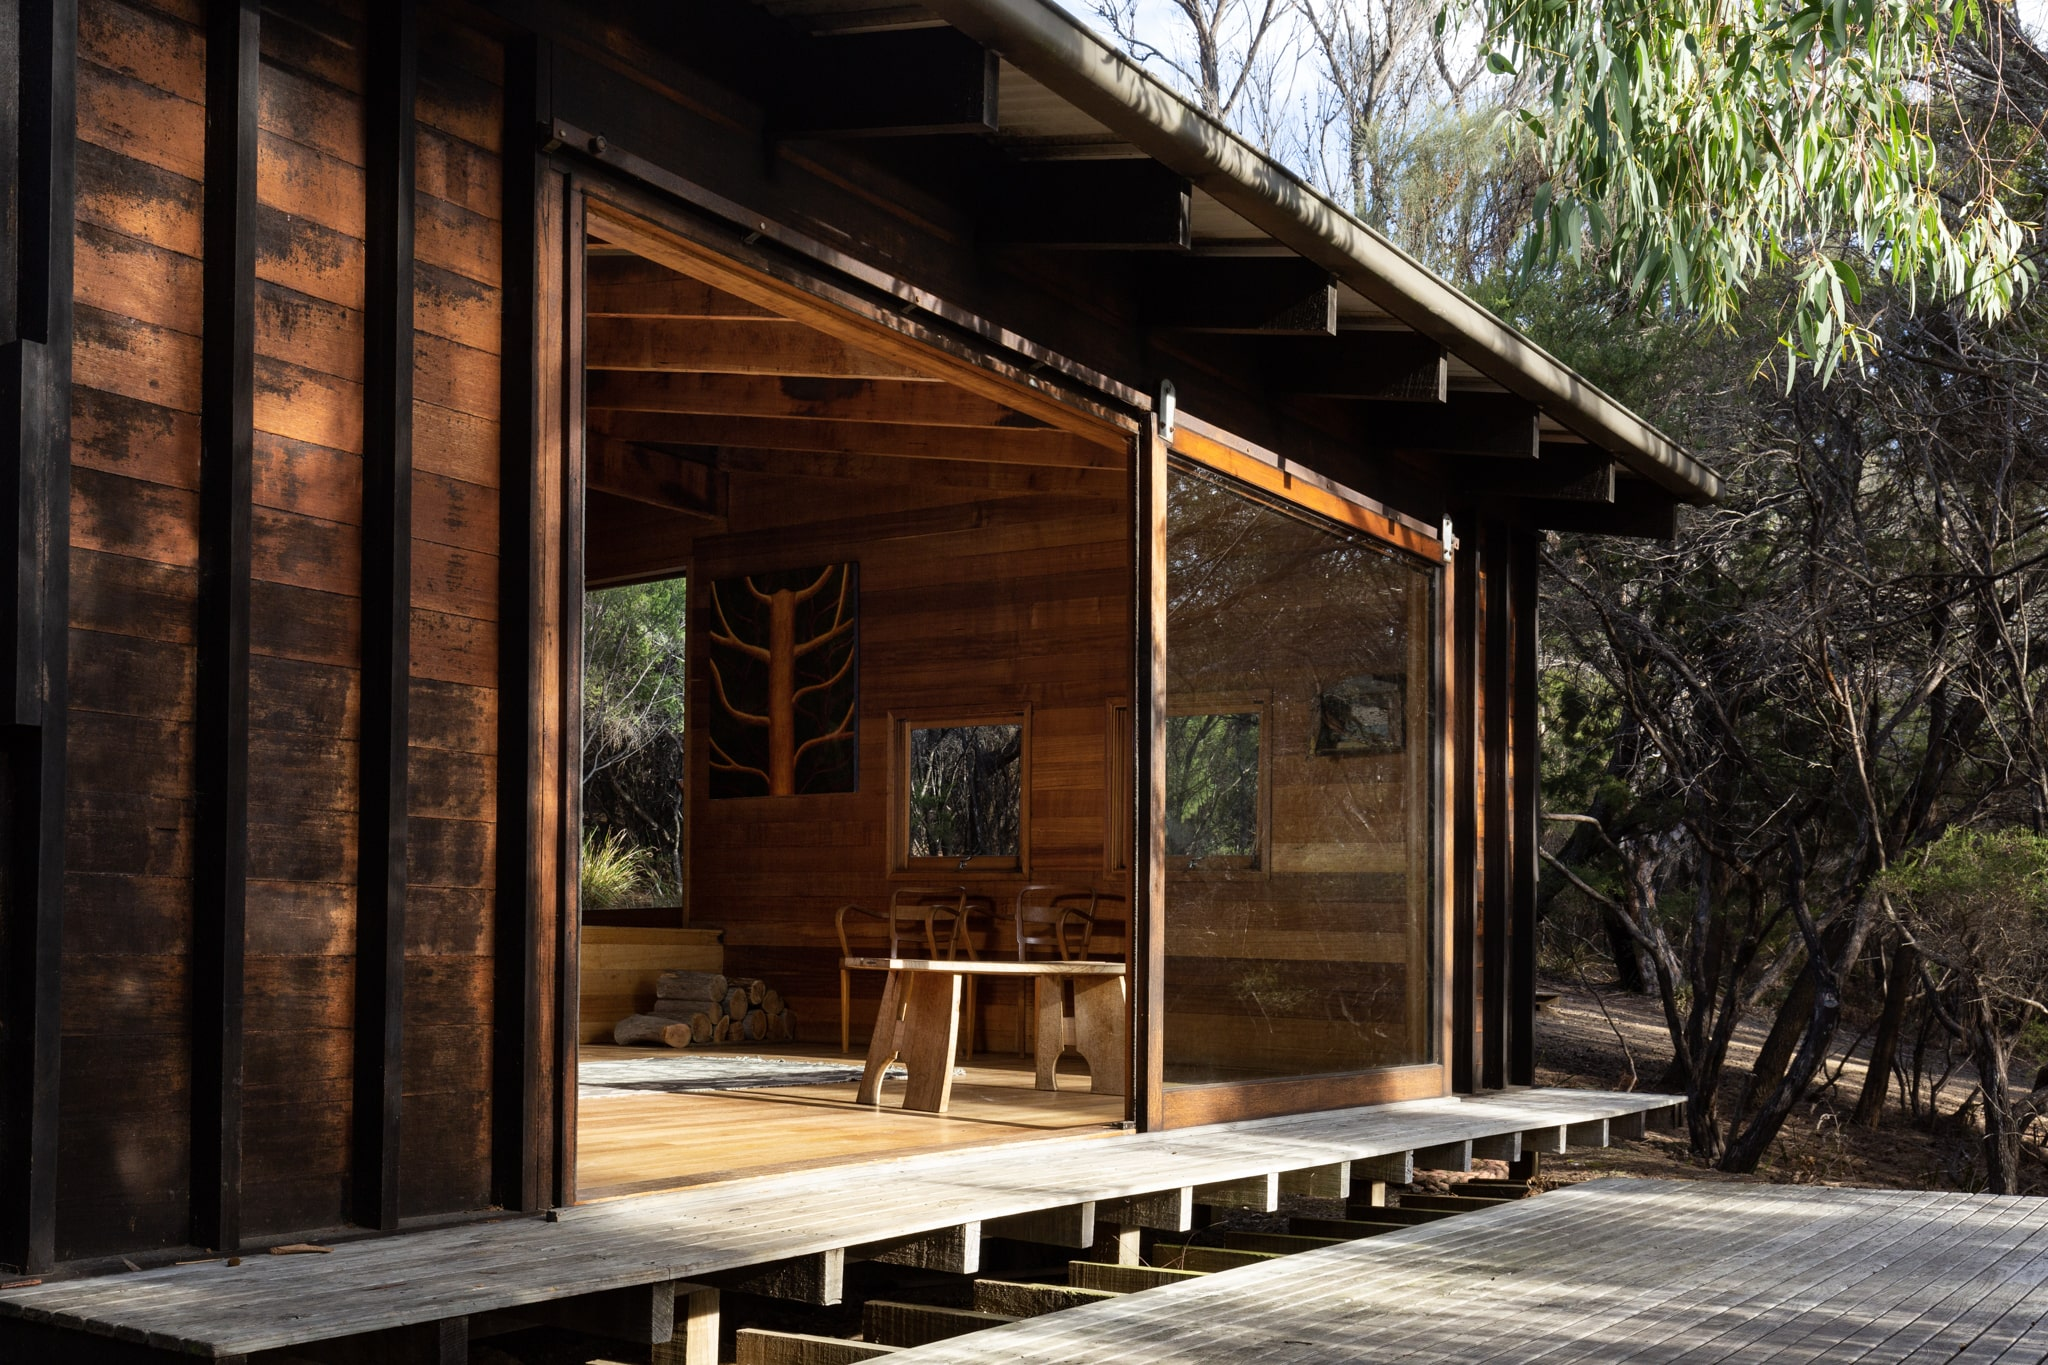 Decades Later, Friendly Beaches Lodge Is Awarded First Place For Enduring Architecture At The 2018 Tasmanian Architecture